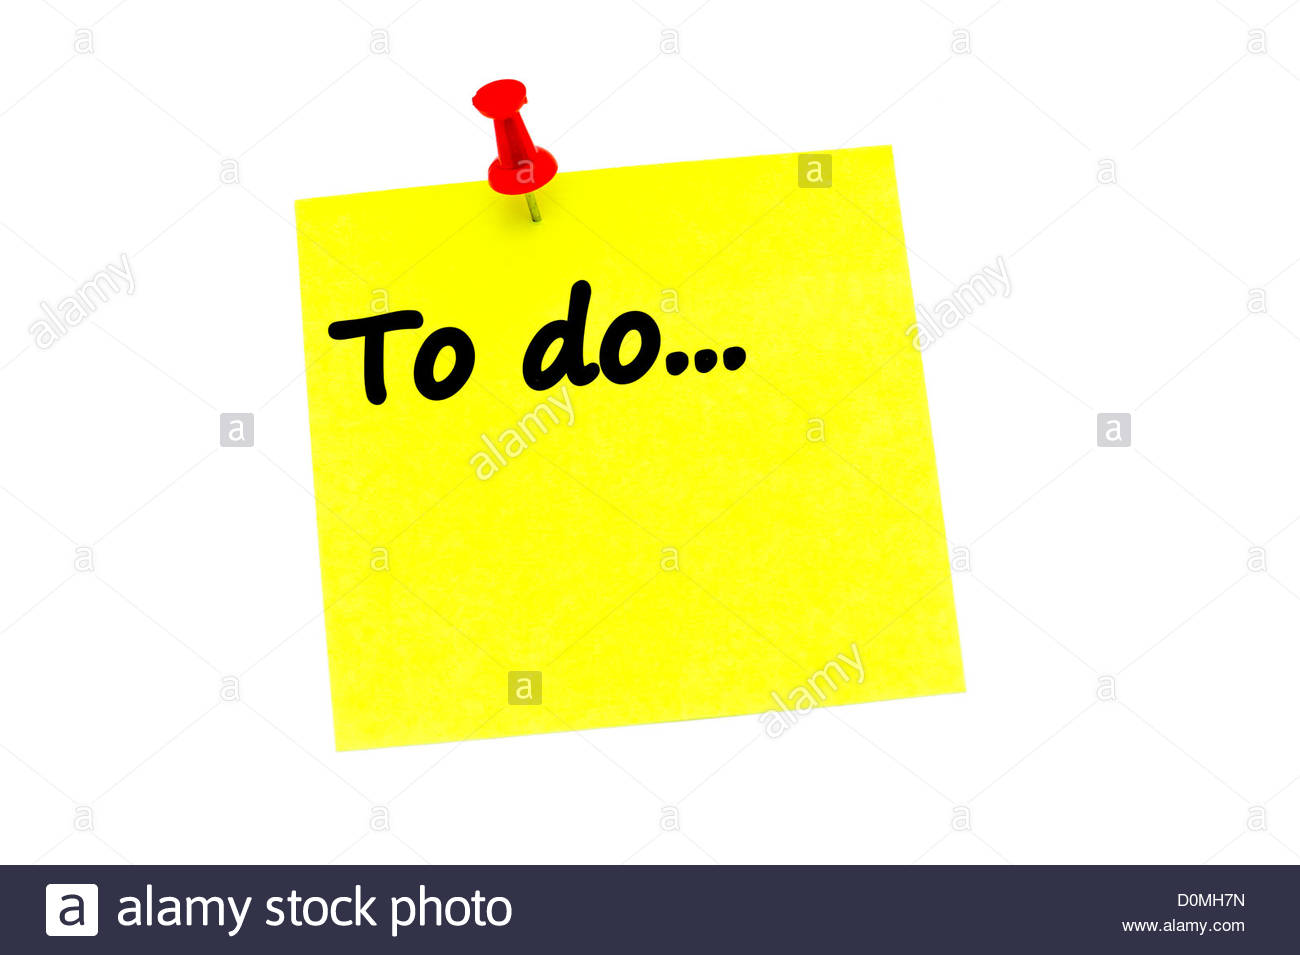 To do list on a yellow post it note held in place with a red push pin. - Stock Image